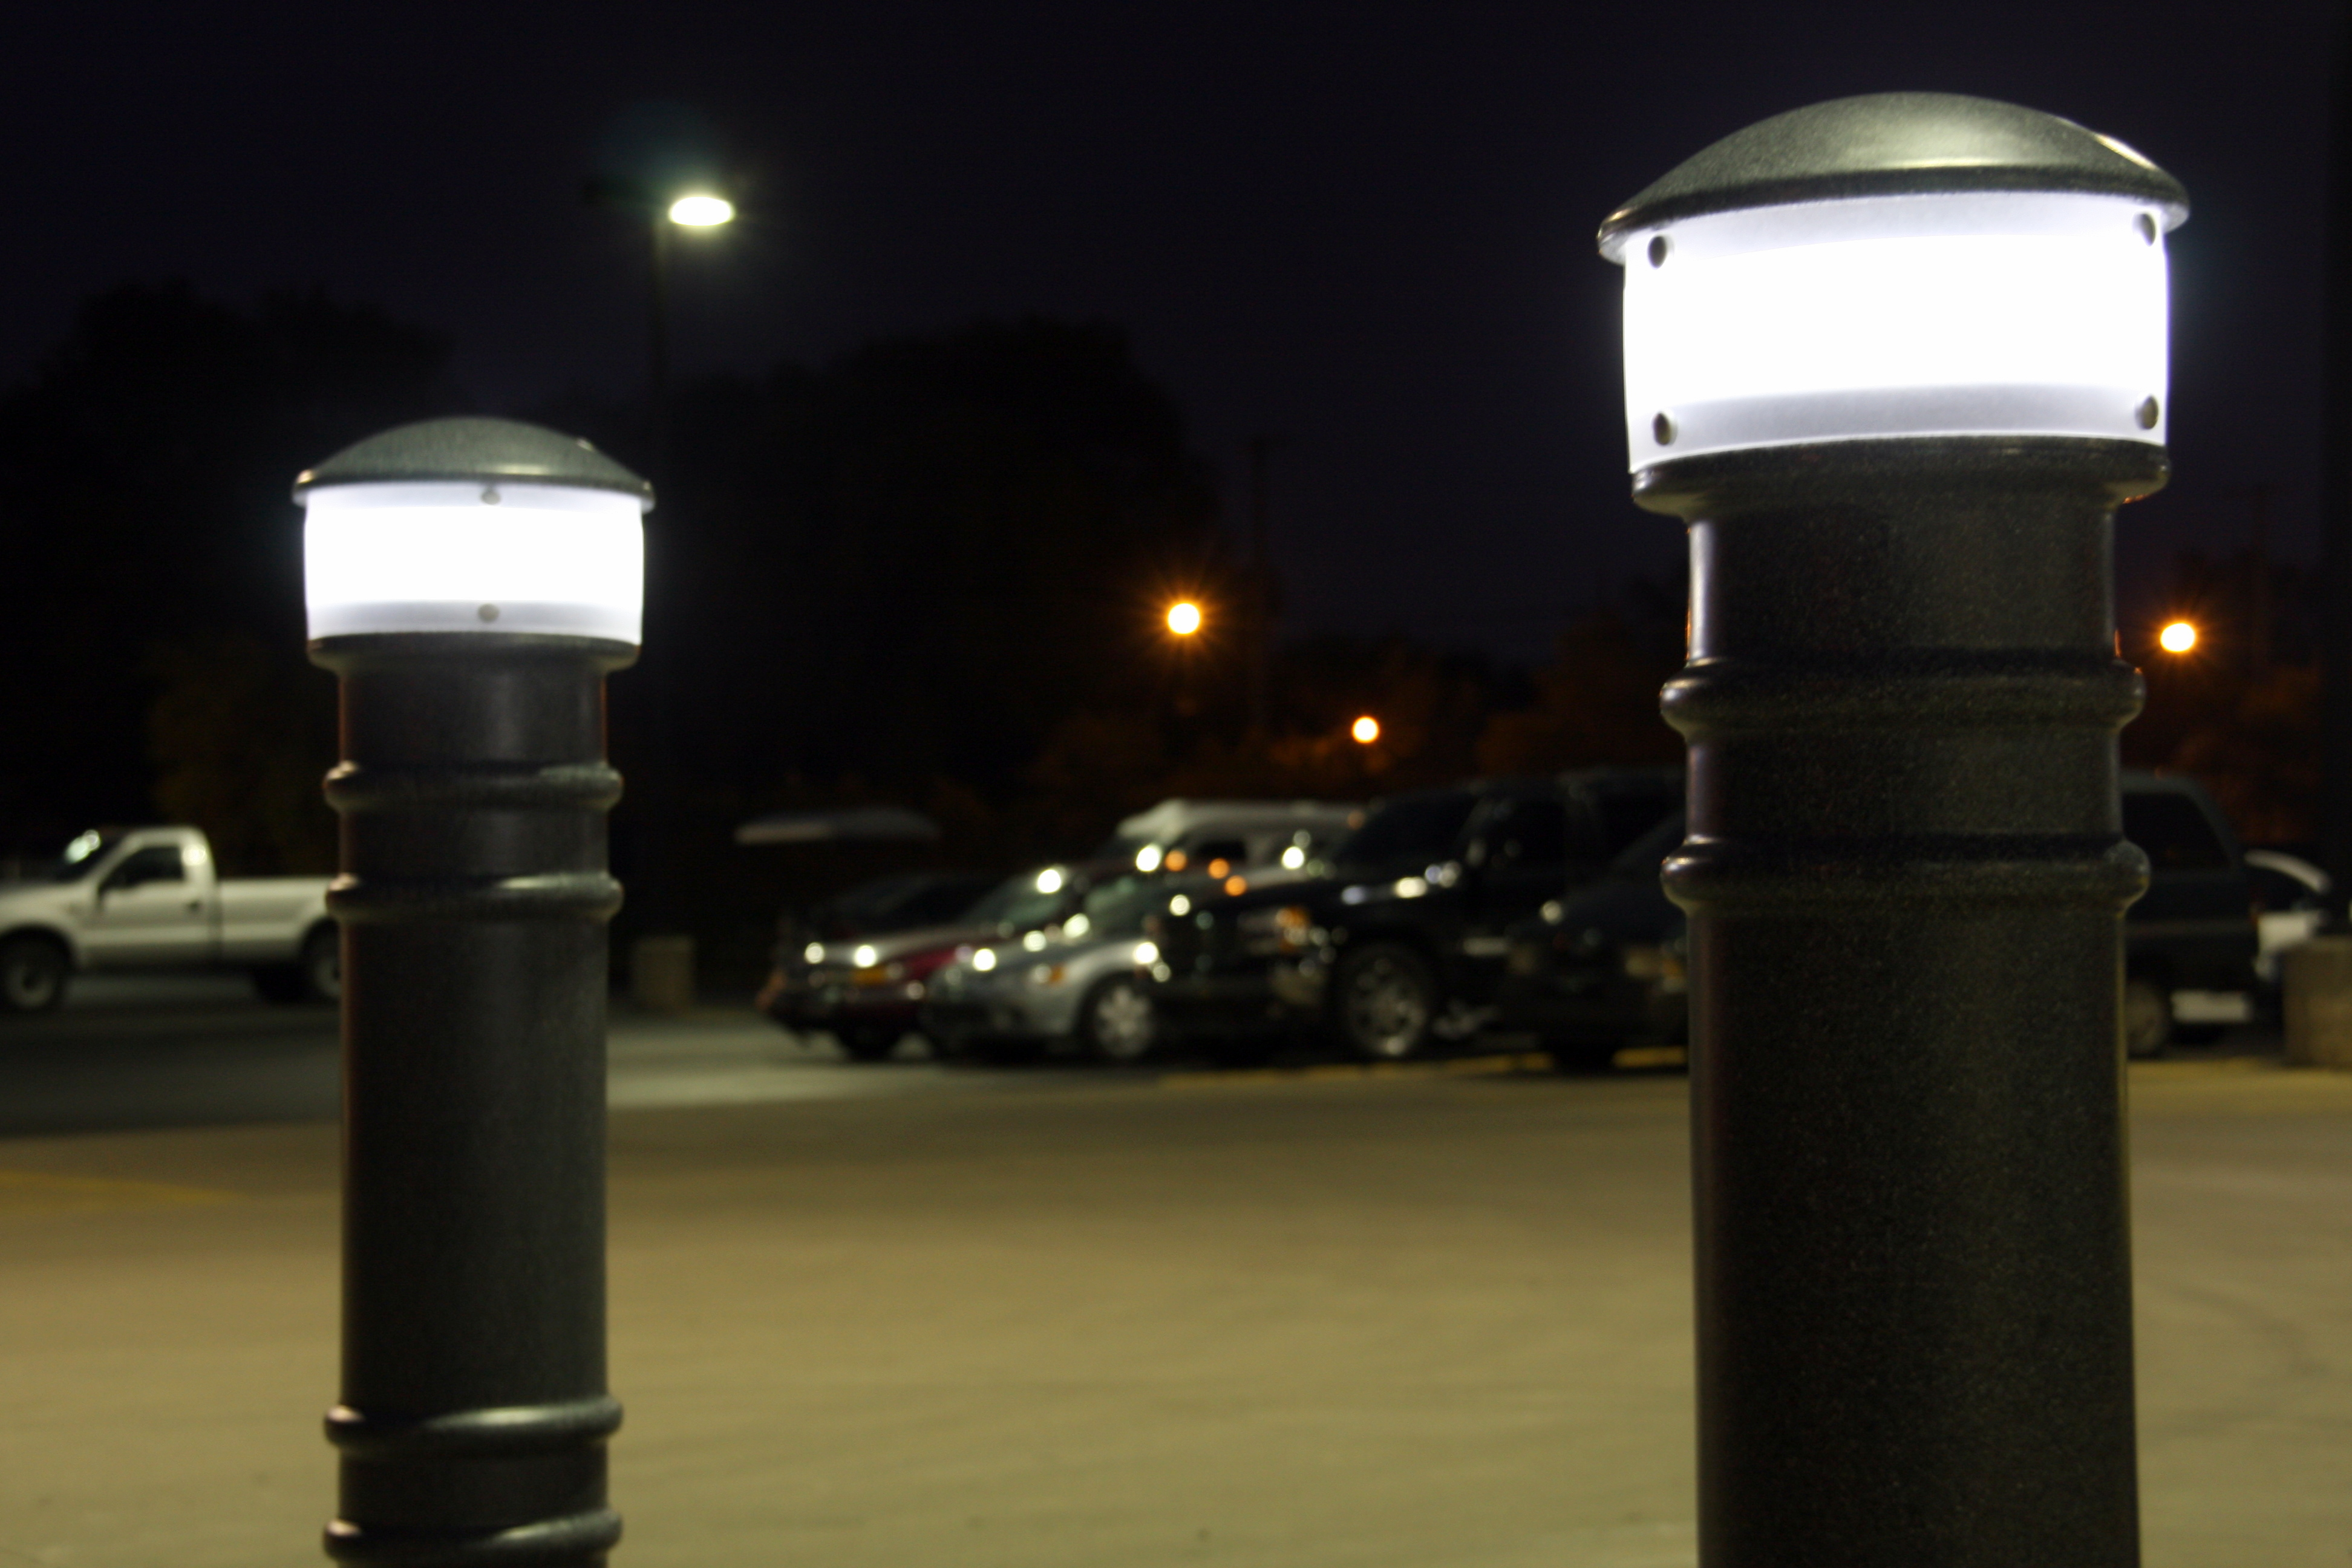 Hardwired Lighted Bollard Covers